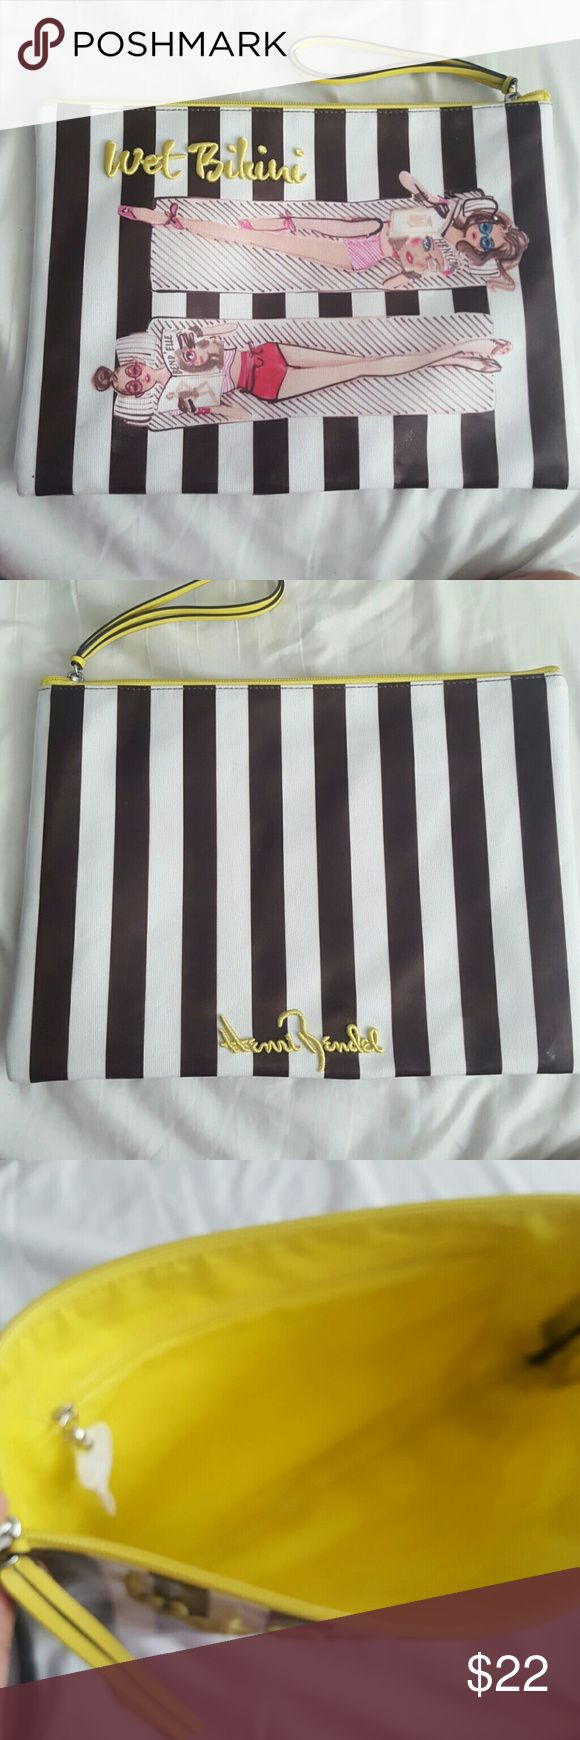 Henri Bendel Wet Bikini Bag Like new condition Only used once Small pink stain (shown in picture) henri bendel Bags Clutches & Wristlets